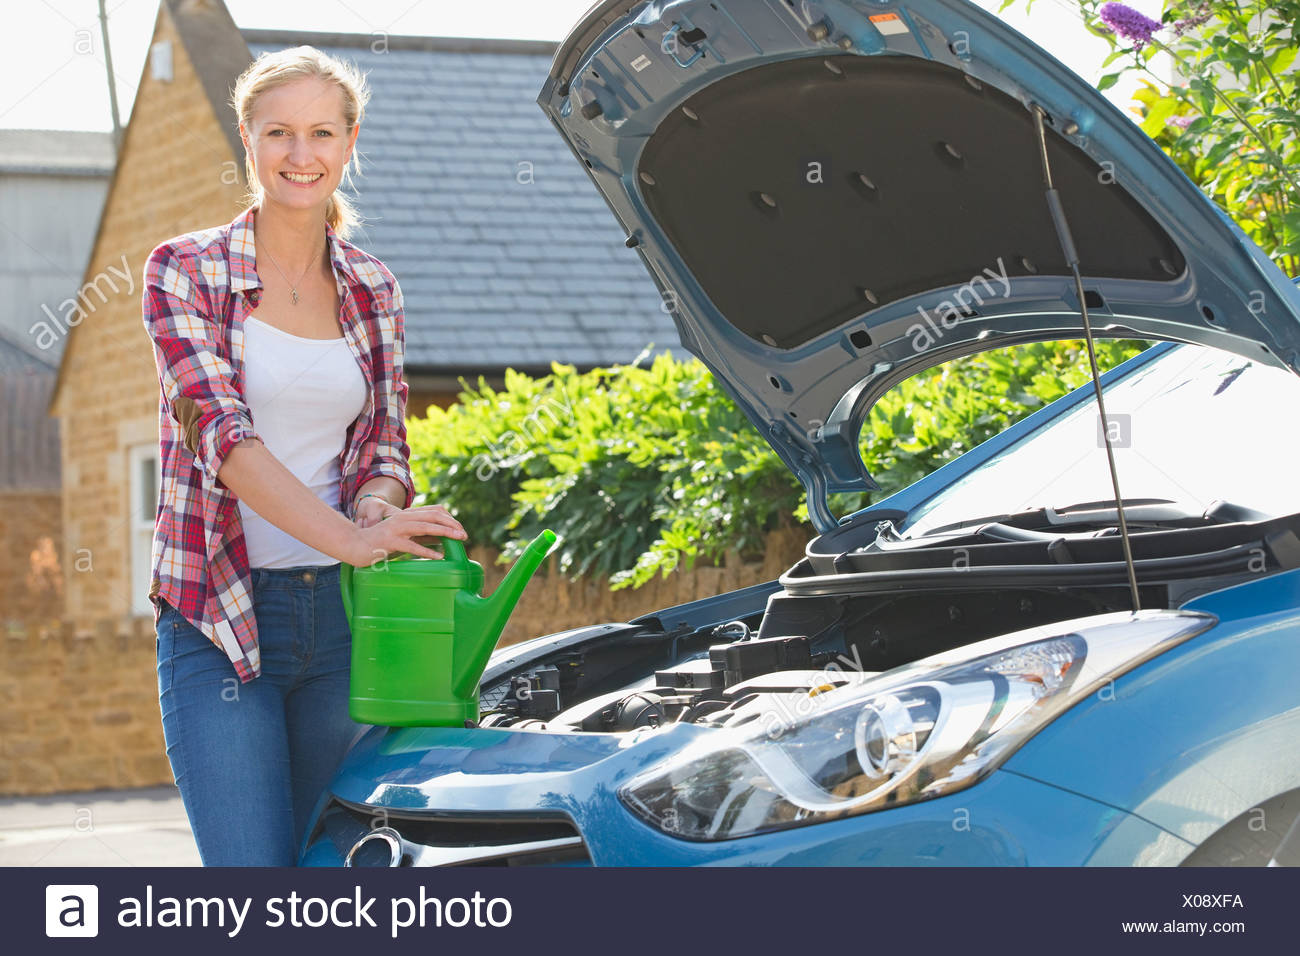 Woman Filling Car Radiator With Water - Stock Image